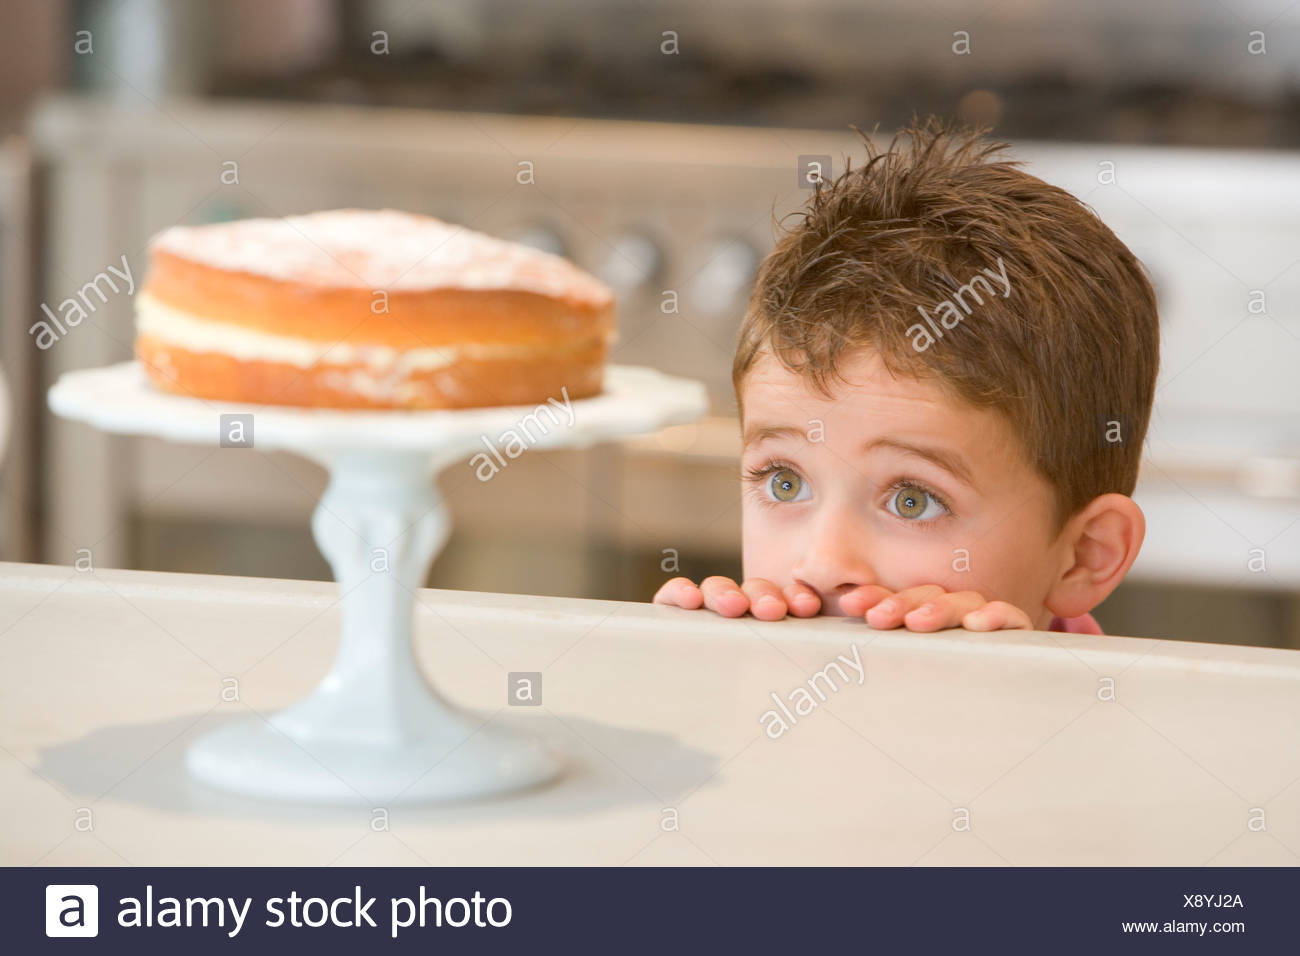 Young boy in kitchen looking at cake on counter Stock Photo